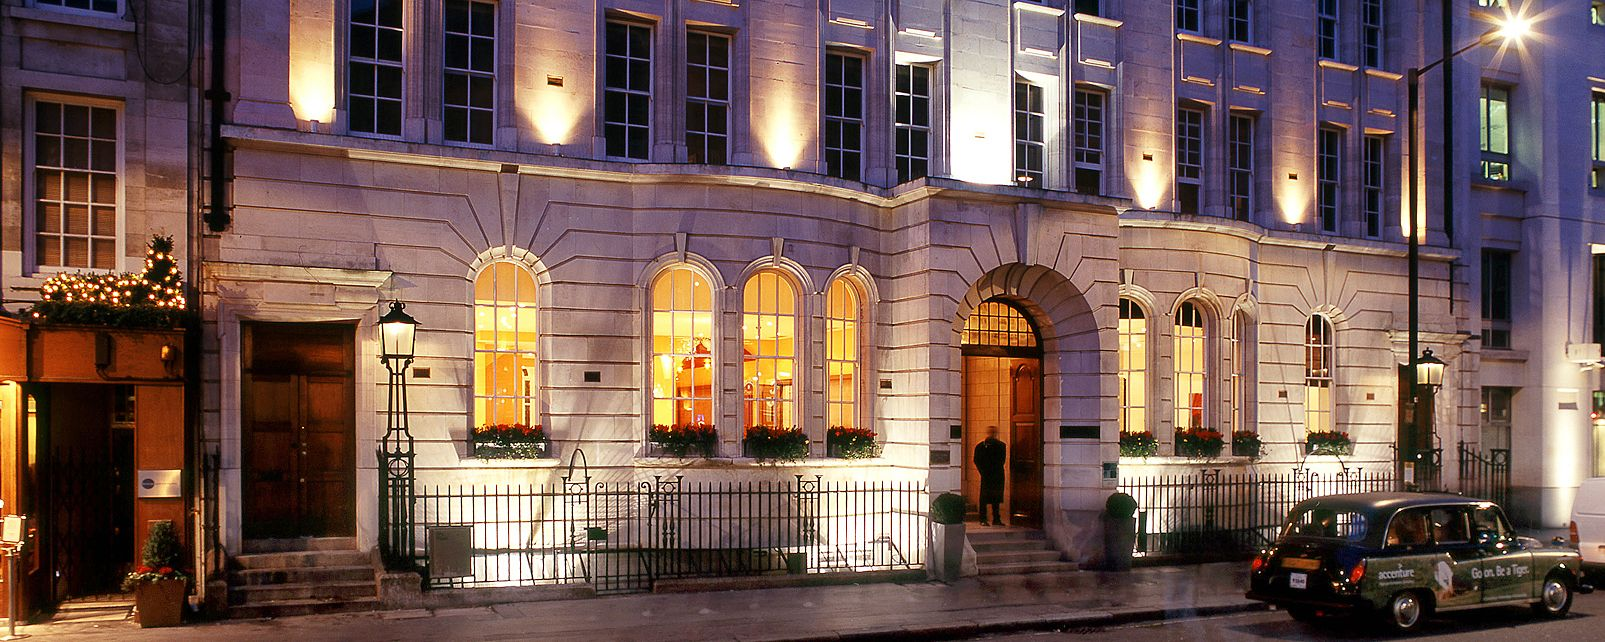 Hotel Courthouse Kempinski London